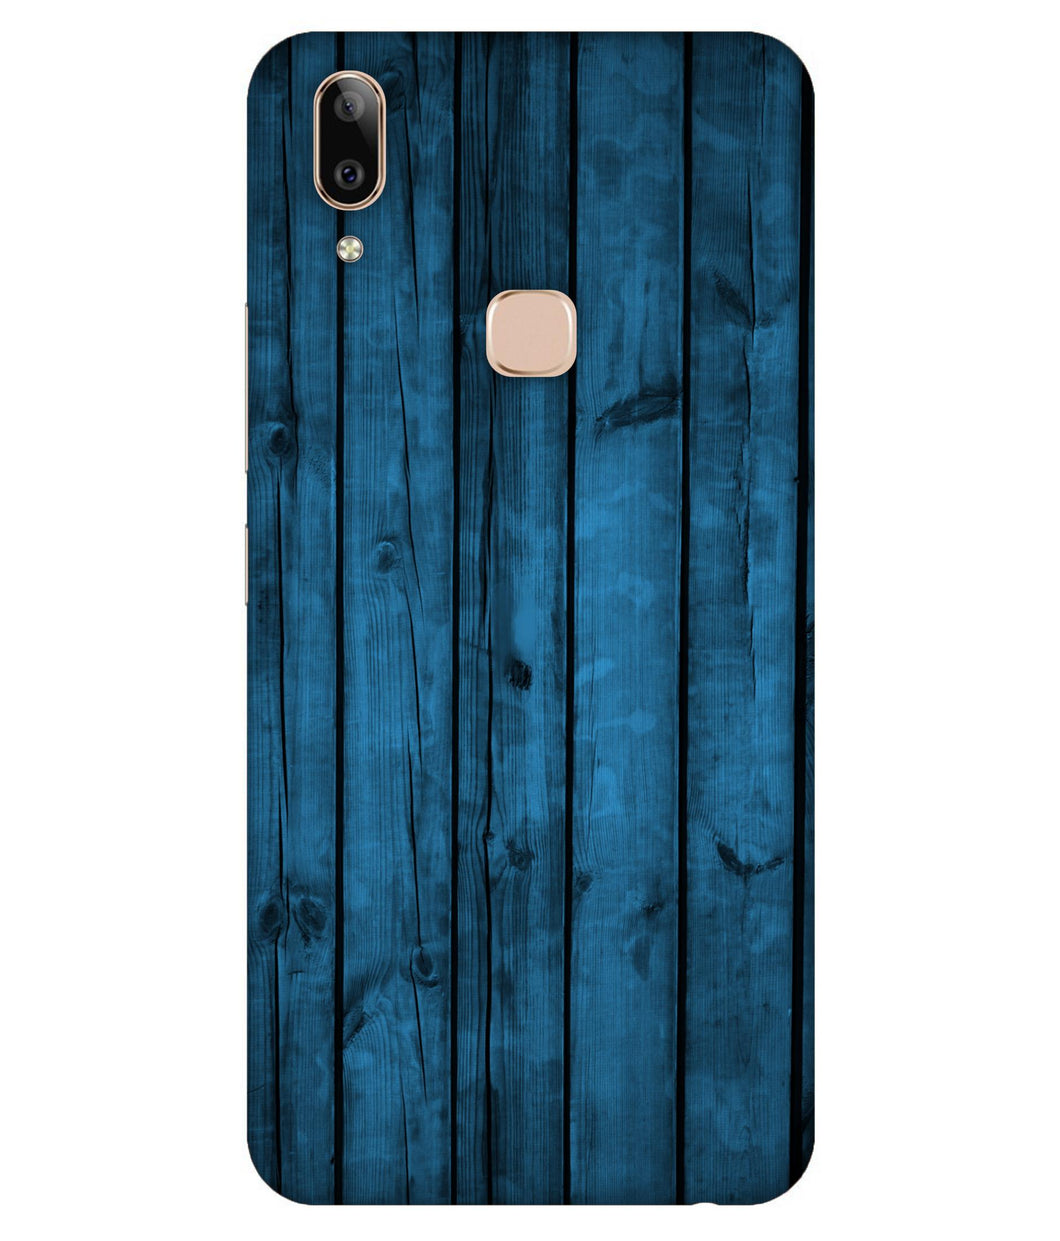 Vivo V9 Bluewoods mobile cover